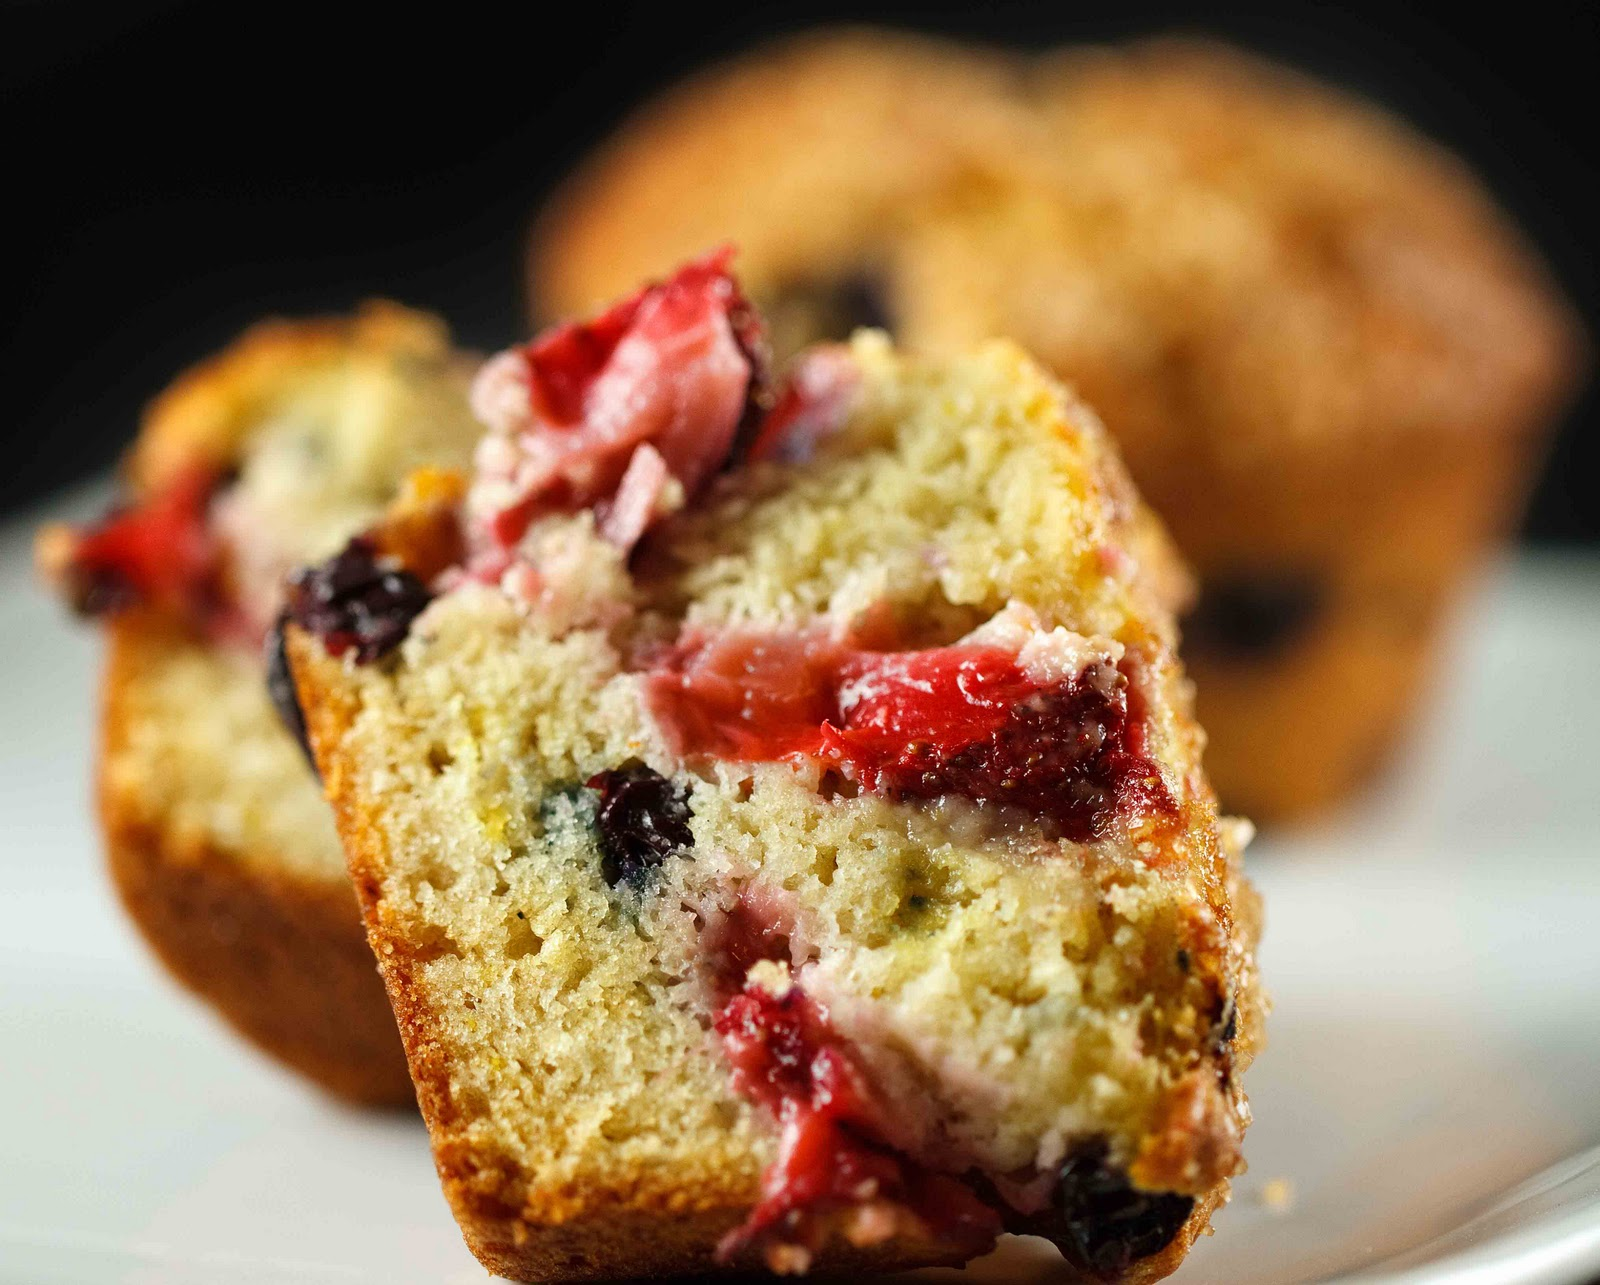 ... chobani called i made muffins not only muffins but very berry muffins